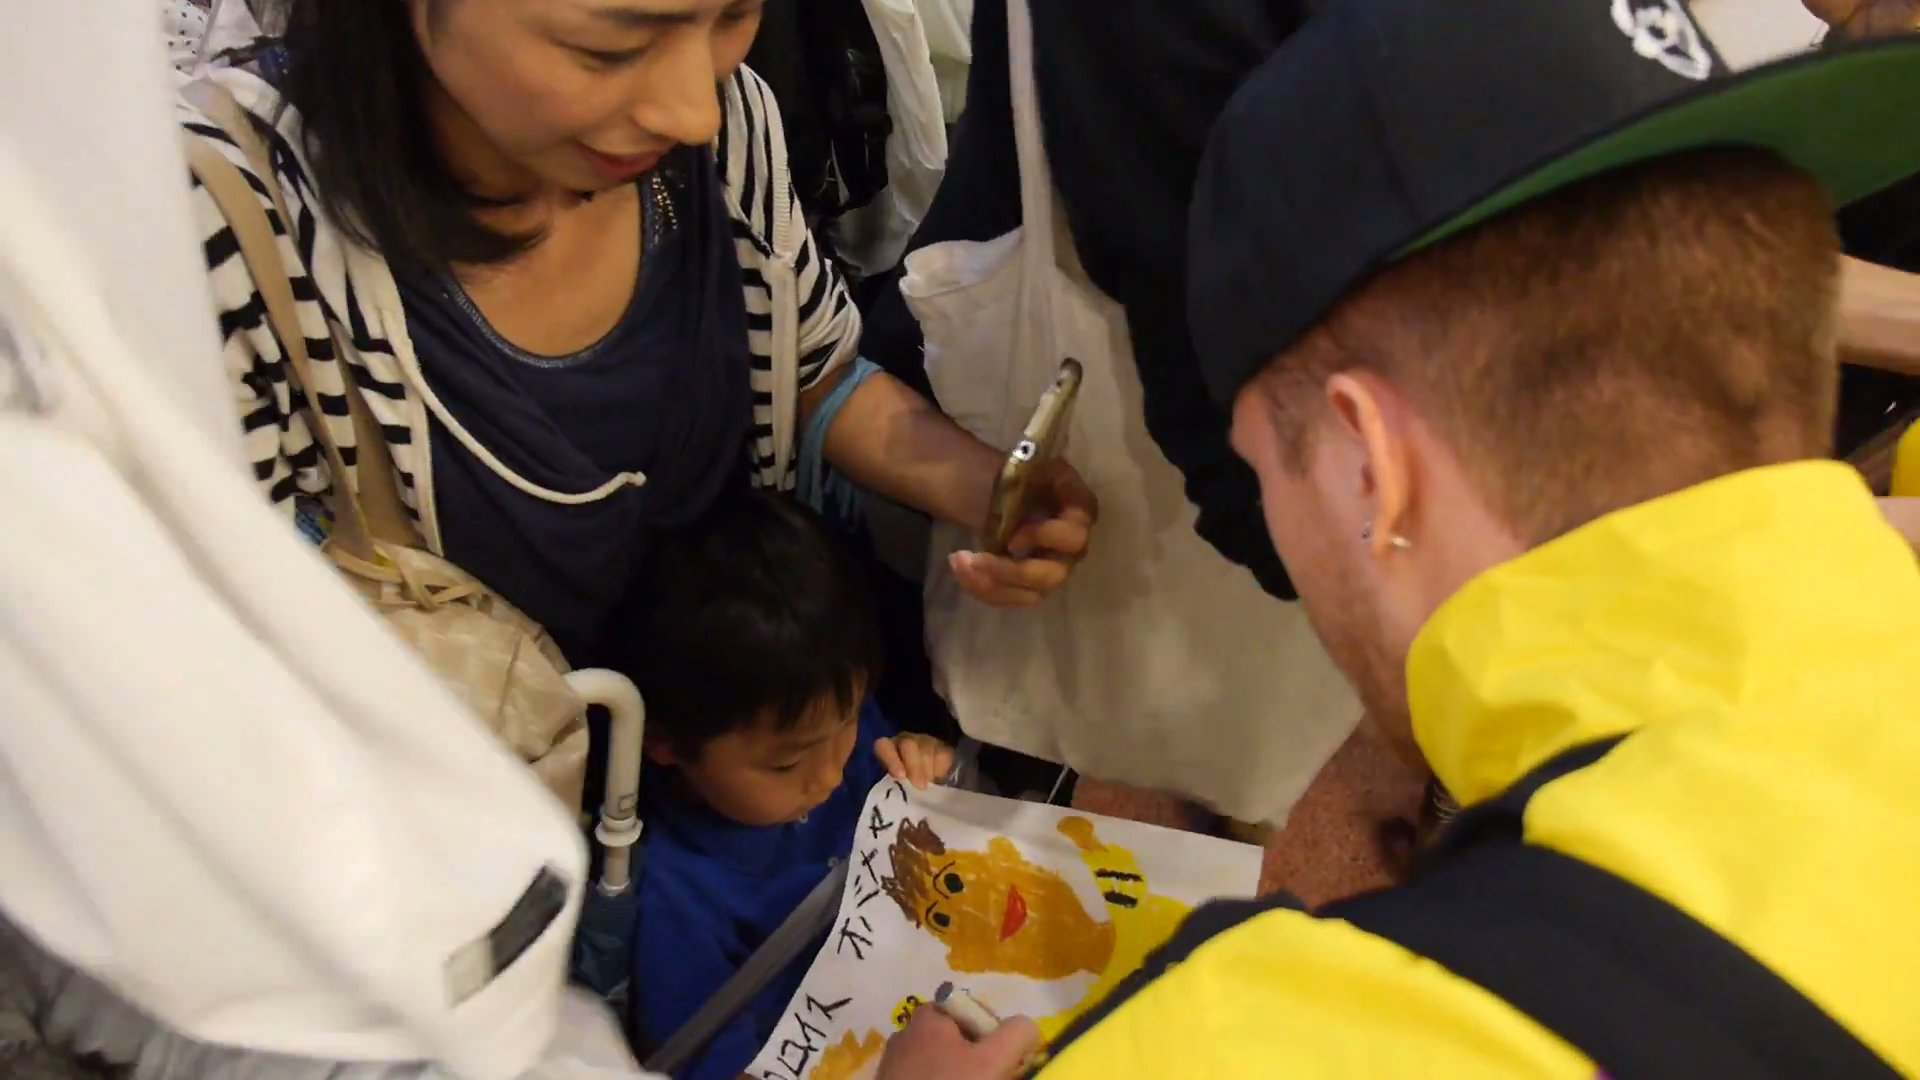 Marco Reus SIGN JAPANESE BOY